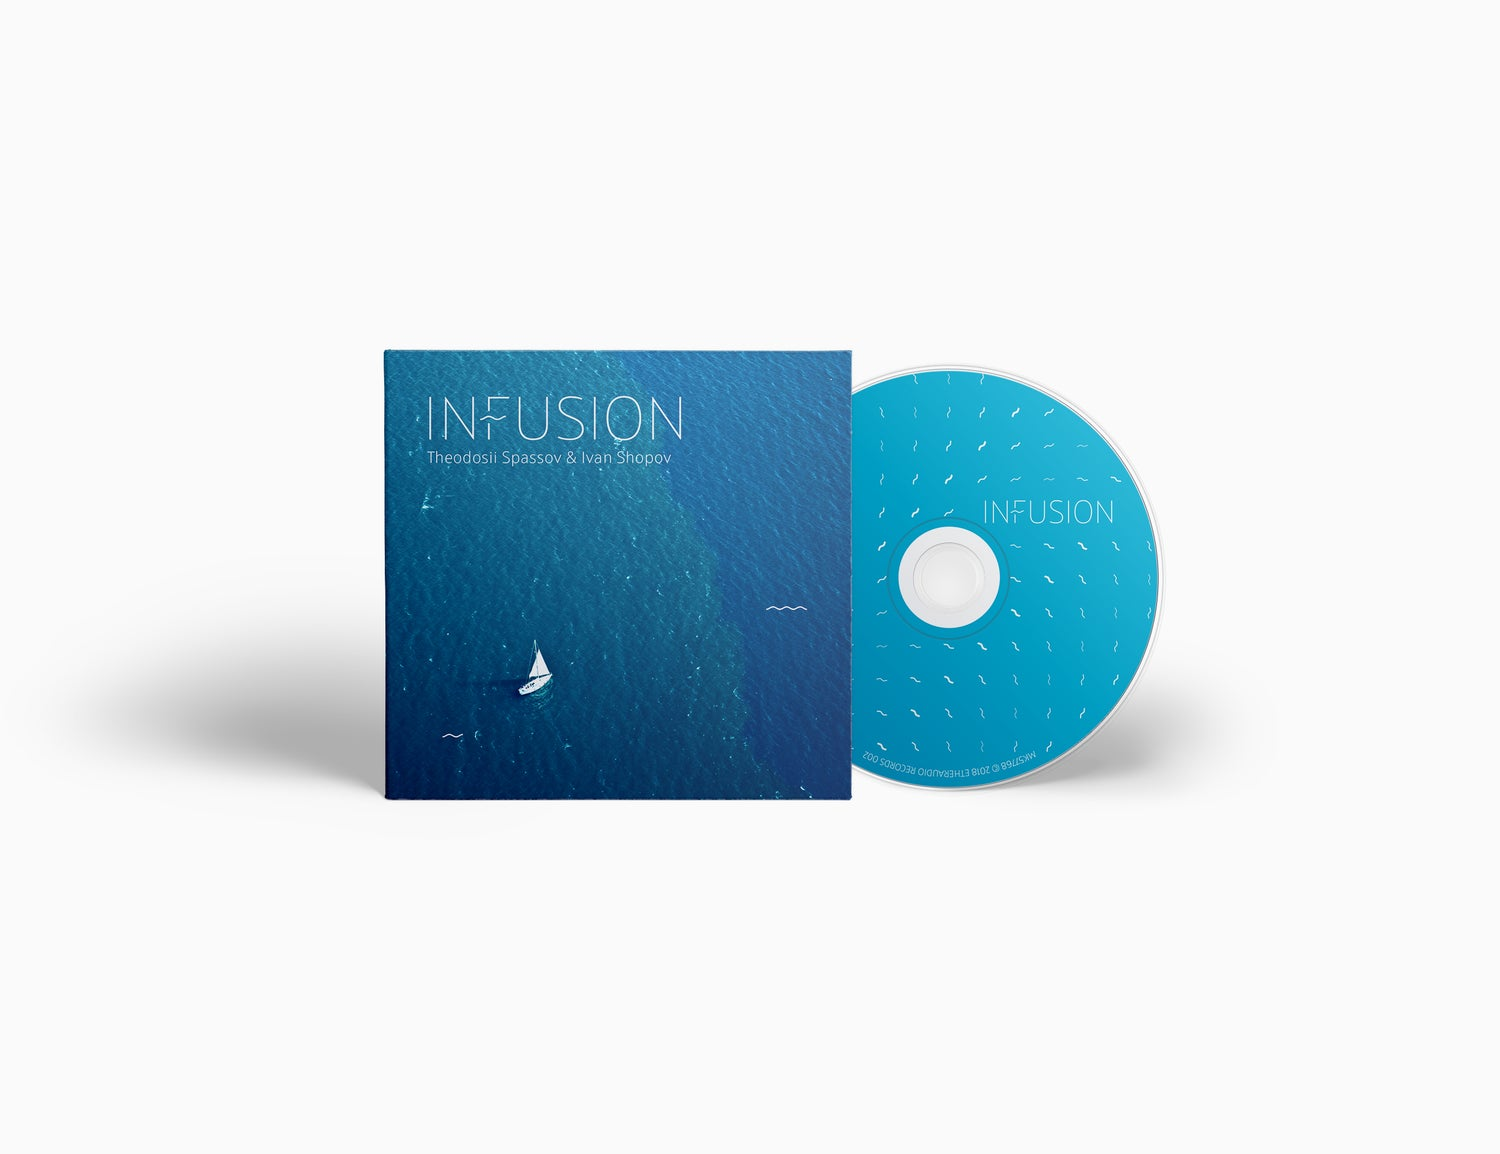 Image of Theodosii Spassov & Ivan Shopov - InFusion (CD with booklet)